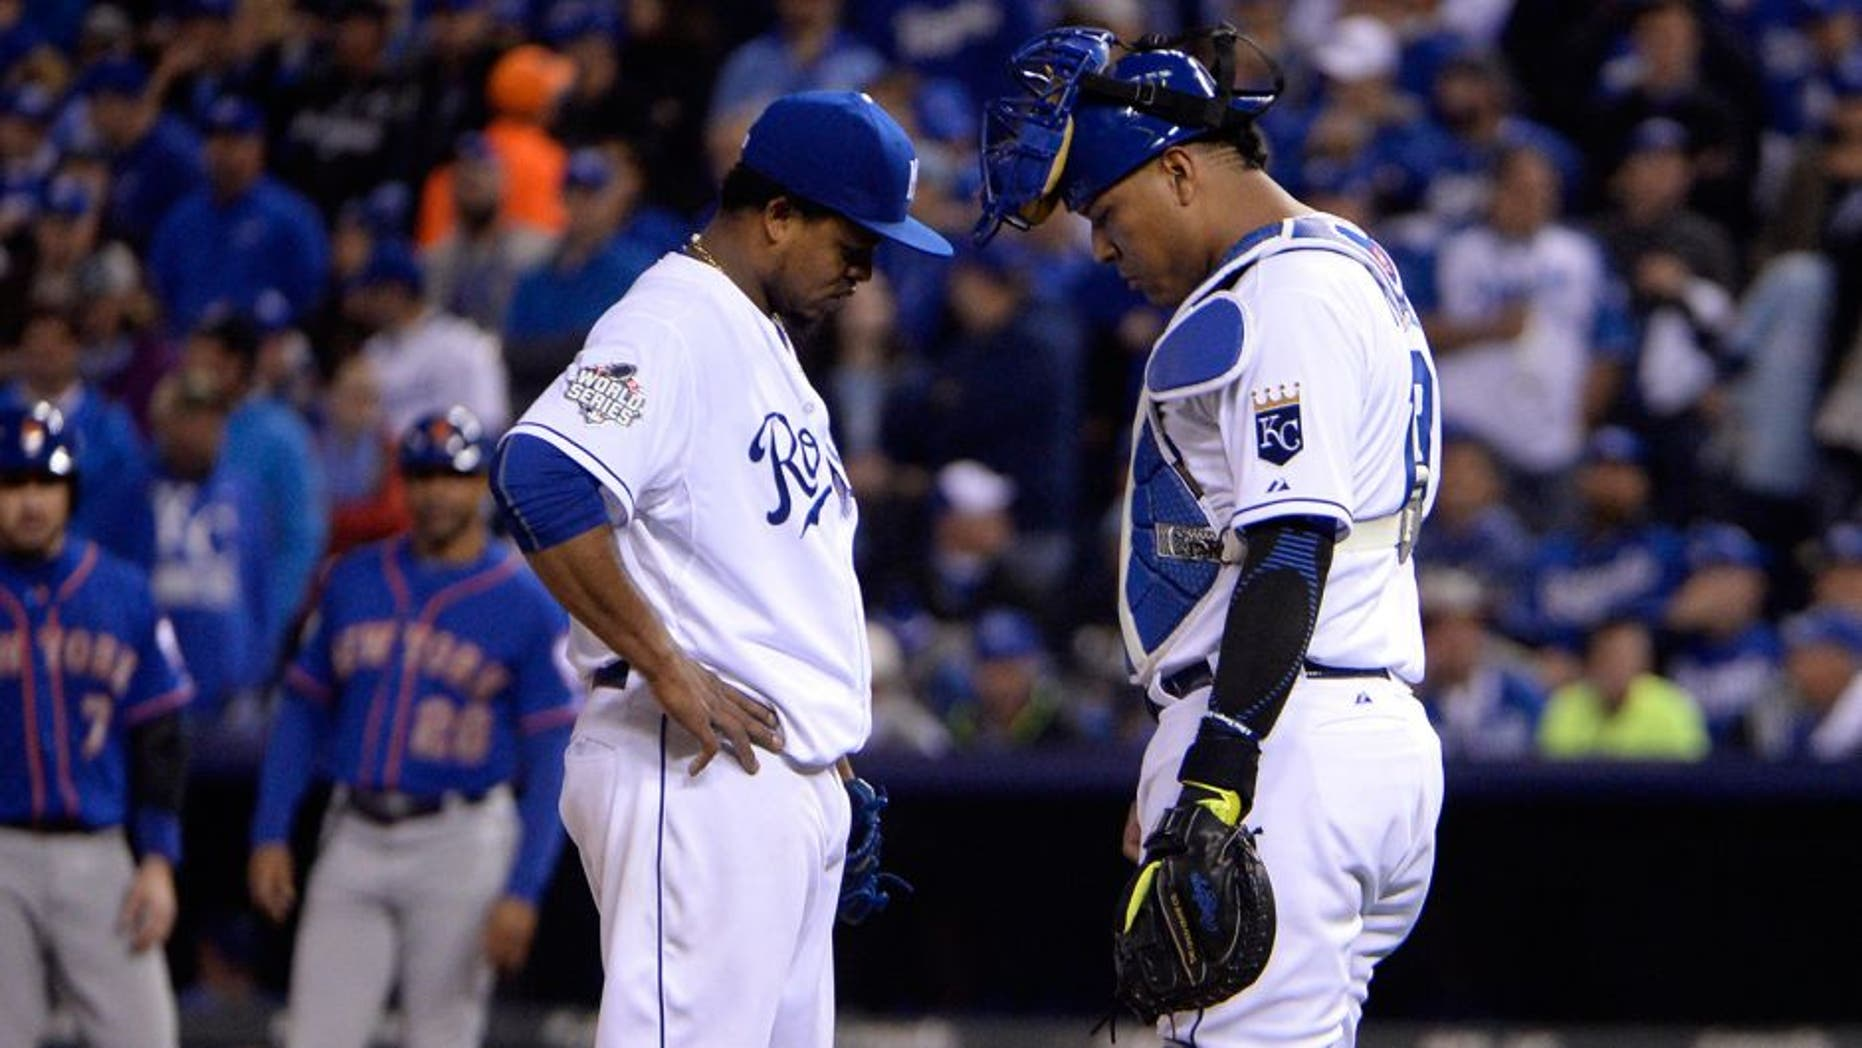 Oct 27, 2015; Kansas City, MO, USA; Kansas City Royals starting pitcher Edinson Volquez (left) talks with catcher Salvador Perez (right) in the fourth inning in game one of the 2015 World Series at Kauffman Stadium. Mandatory Credit: John Rieger-USA TODAY Sports